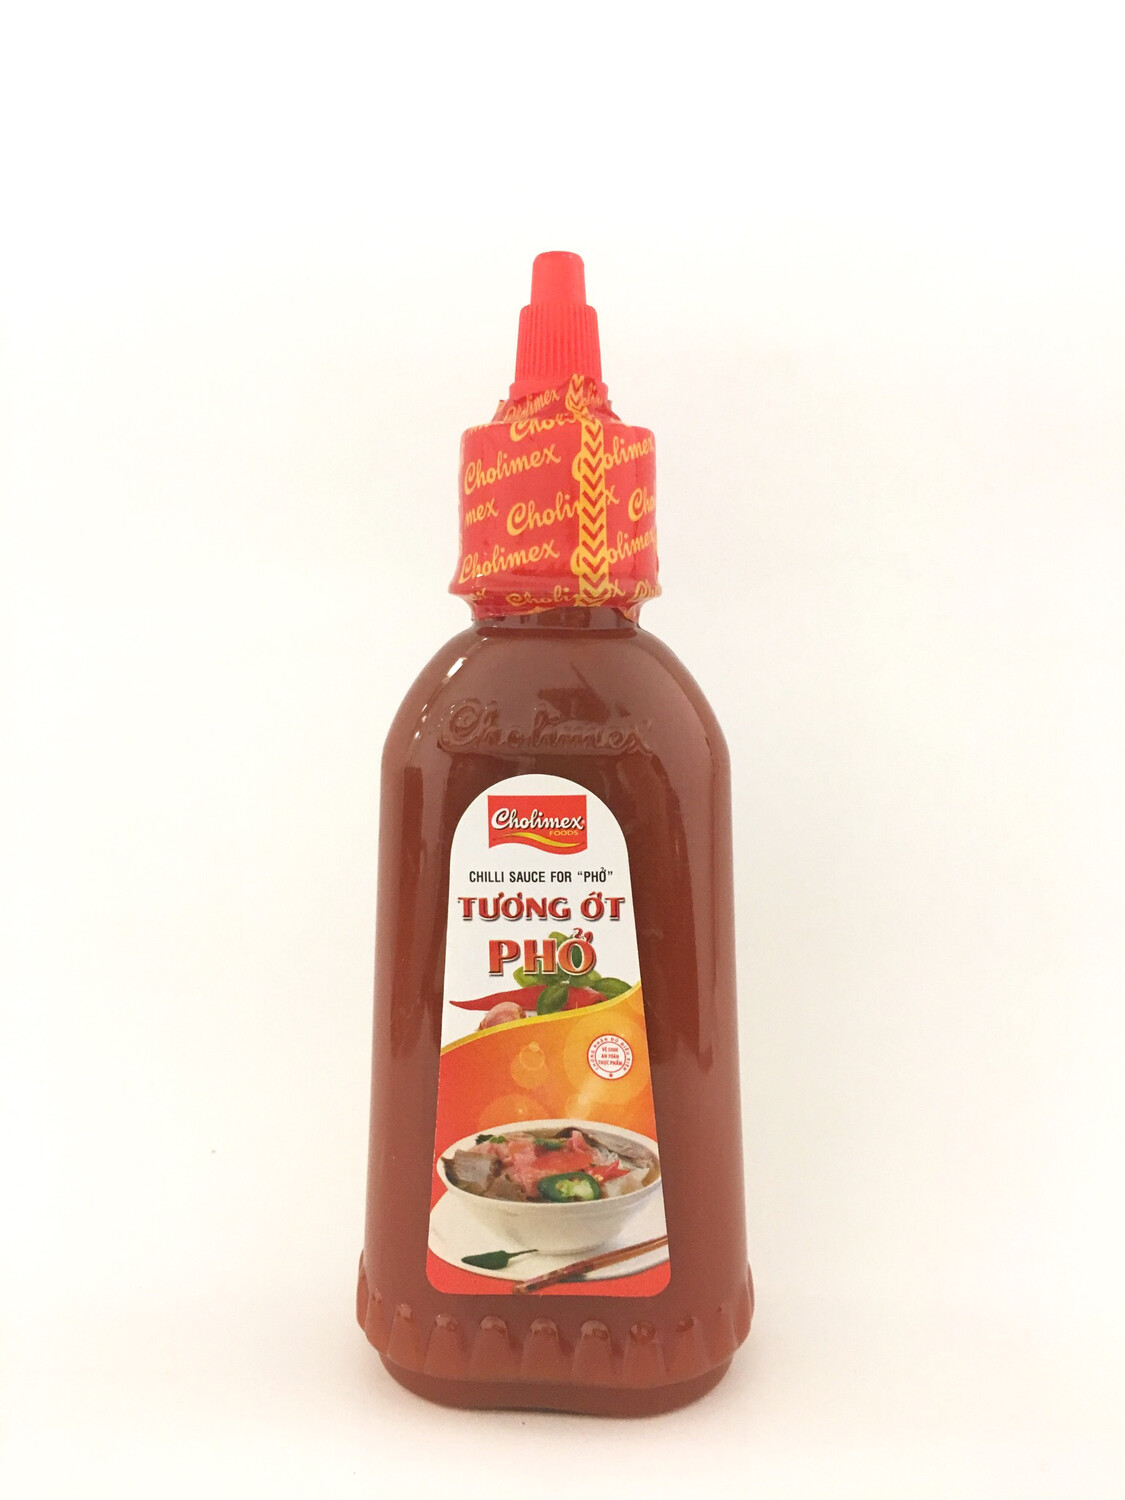 "CHOLIMEX CHILI SAUCE FOR ""PHO"" 36X230G"